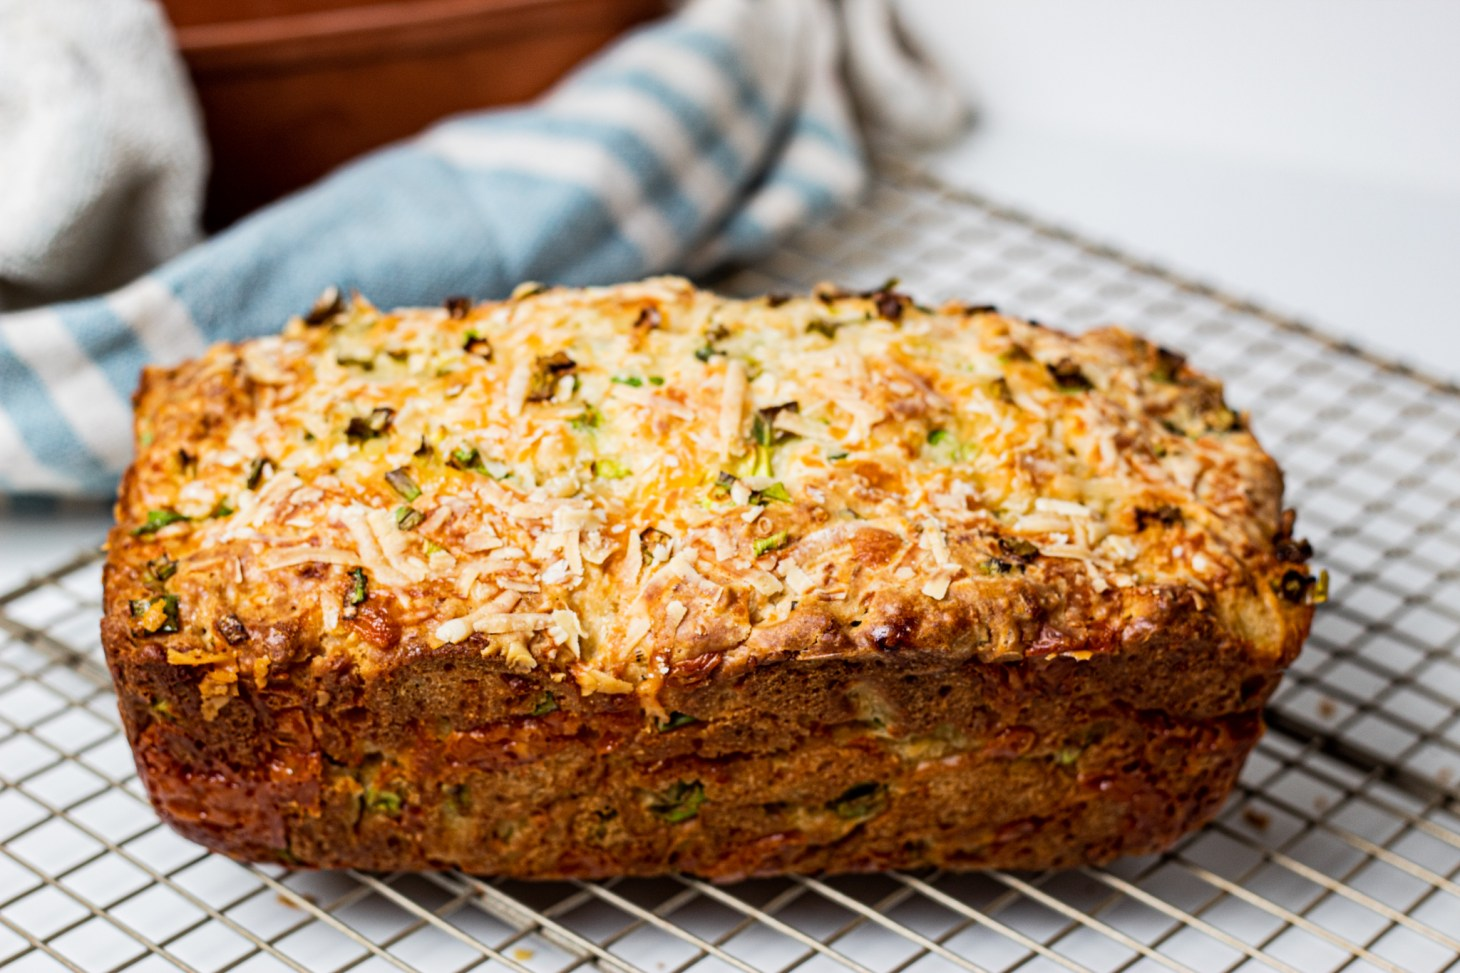 Baked Loaf of Cheddar and Spring Onion bread on a rack